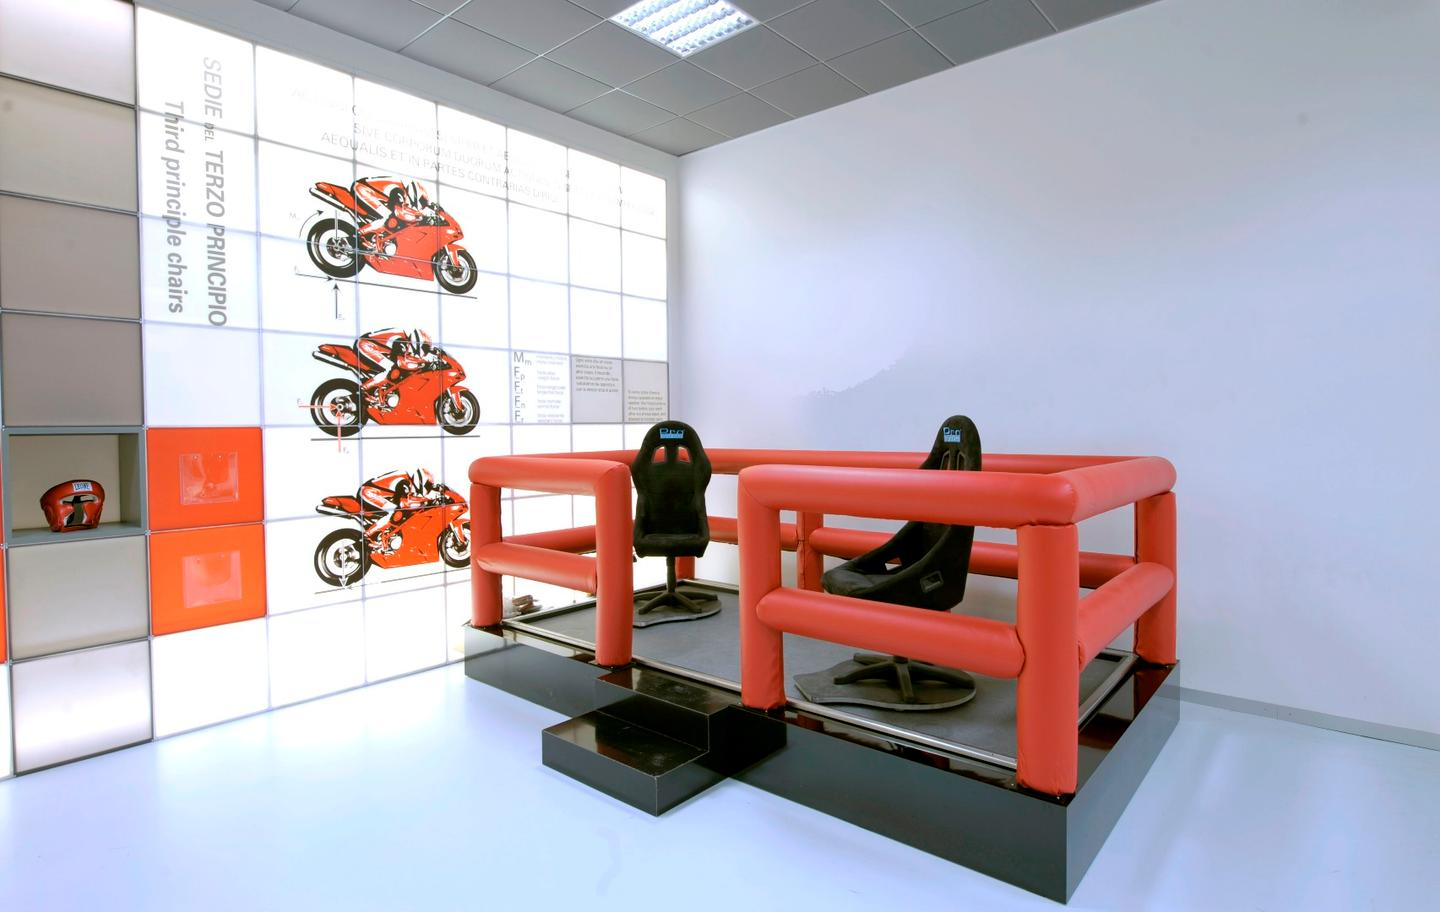 The second room in Ducati's Fisika in Moto laboratory contains an experiment where two chairs on a very low friction surface illustrate Newton's third law, that says that for every action there is an equal and opposite reaction